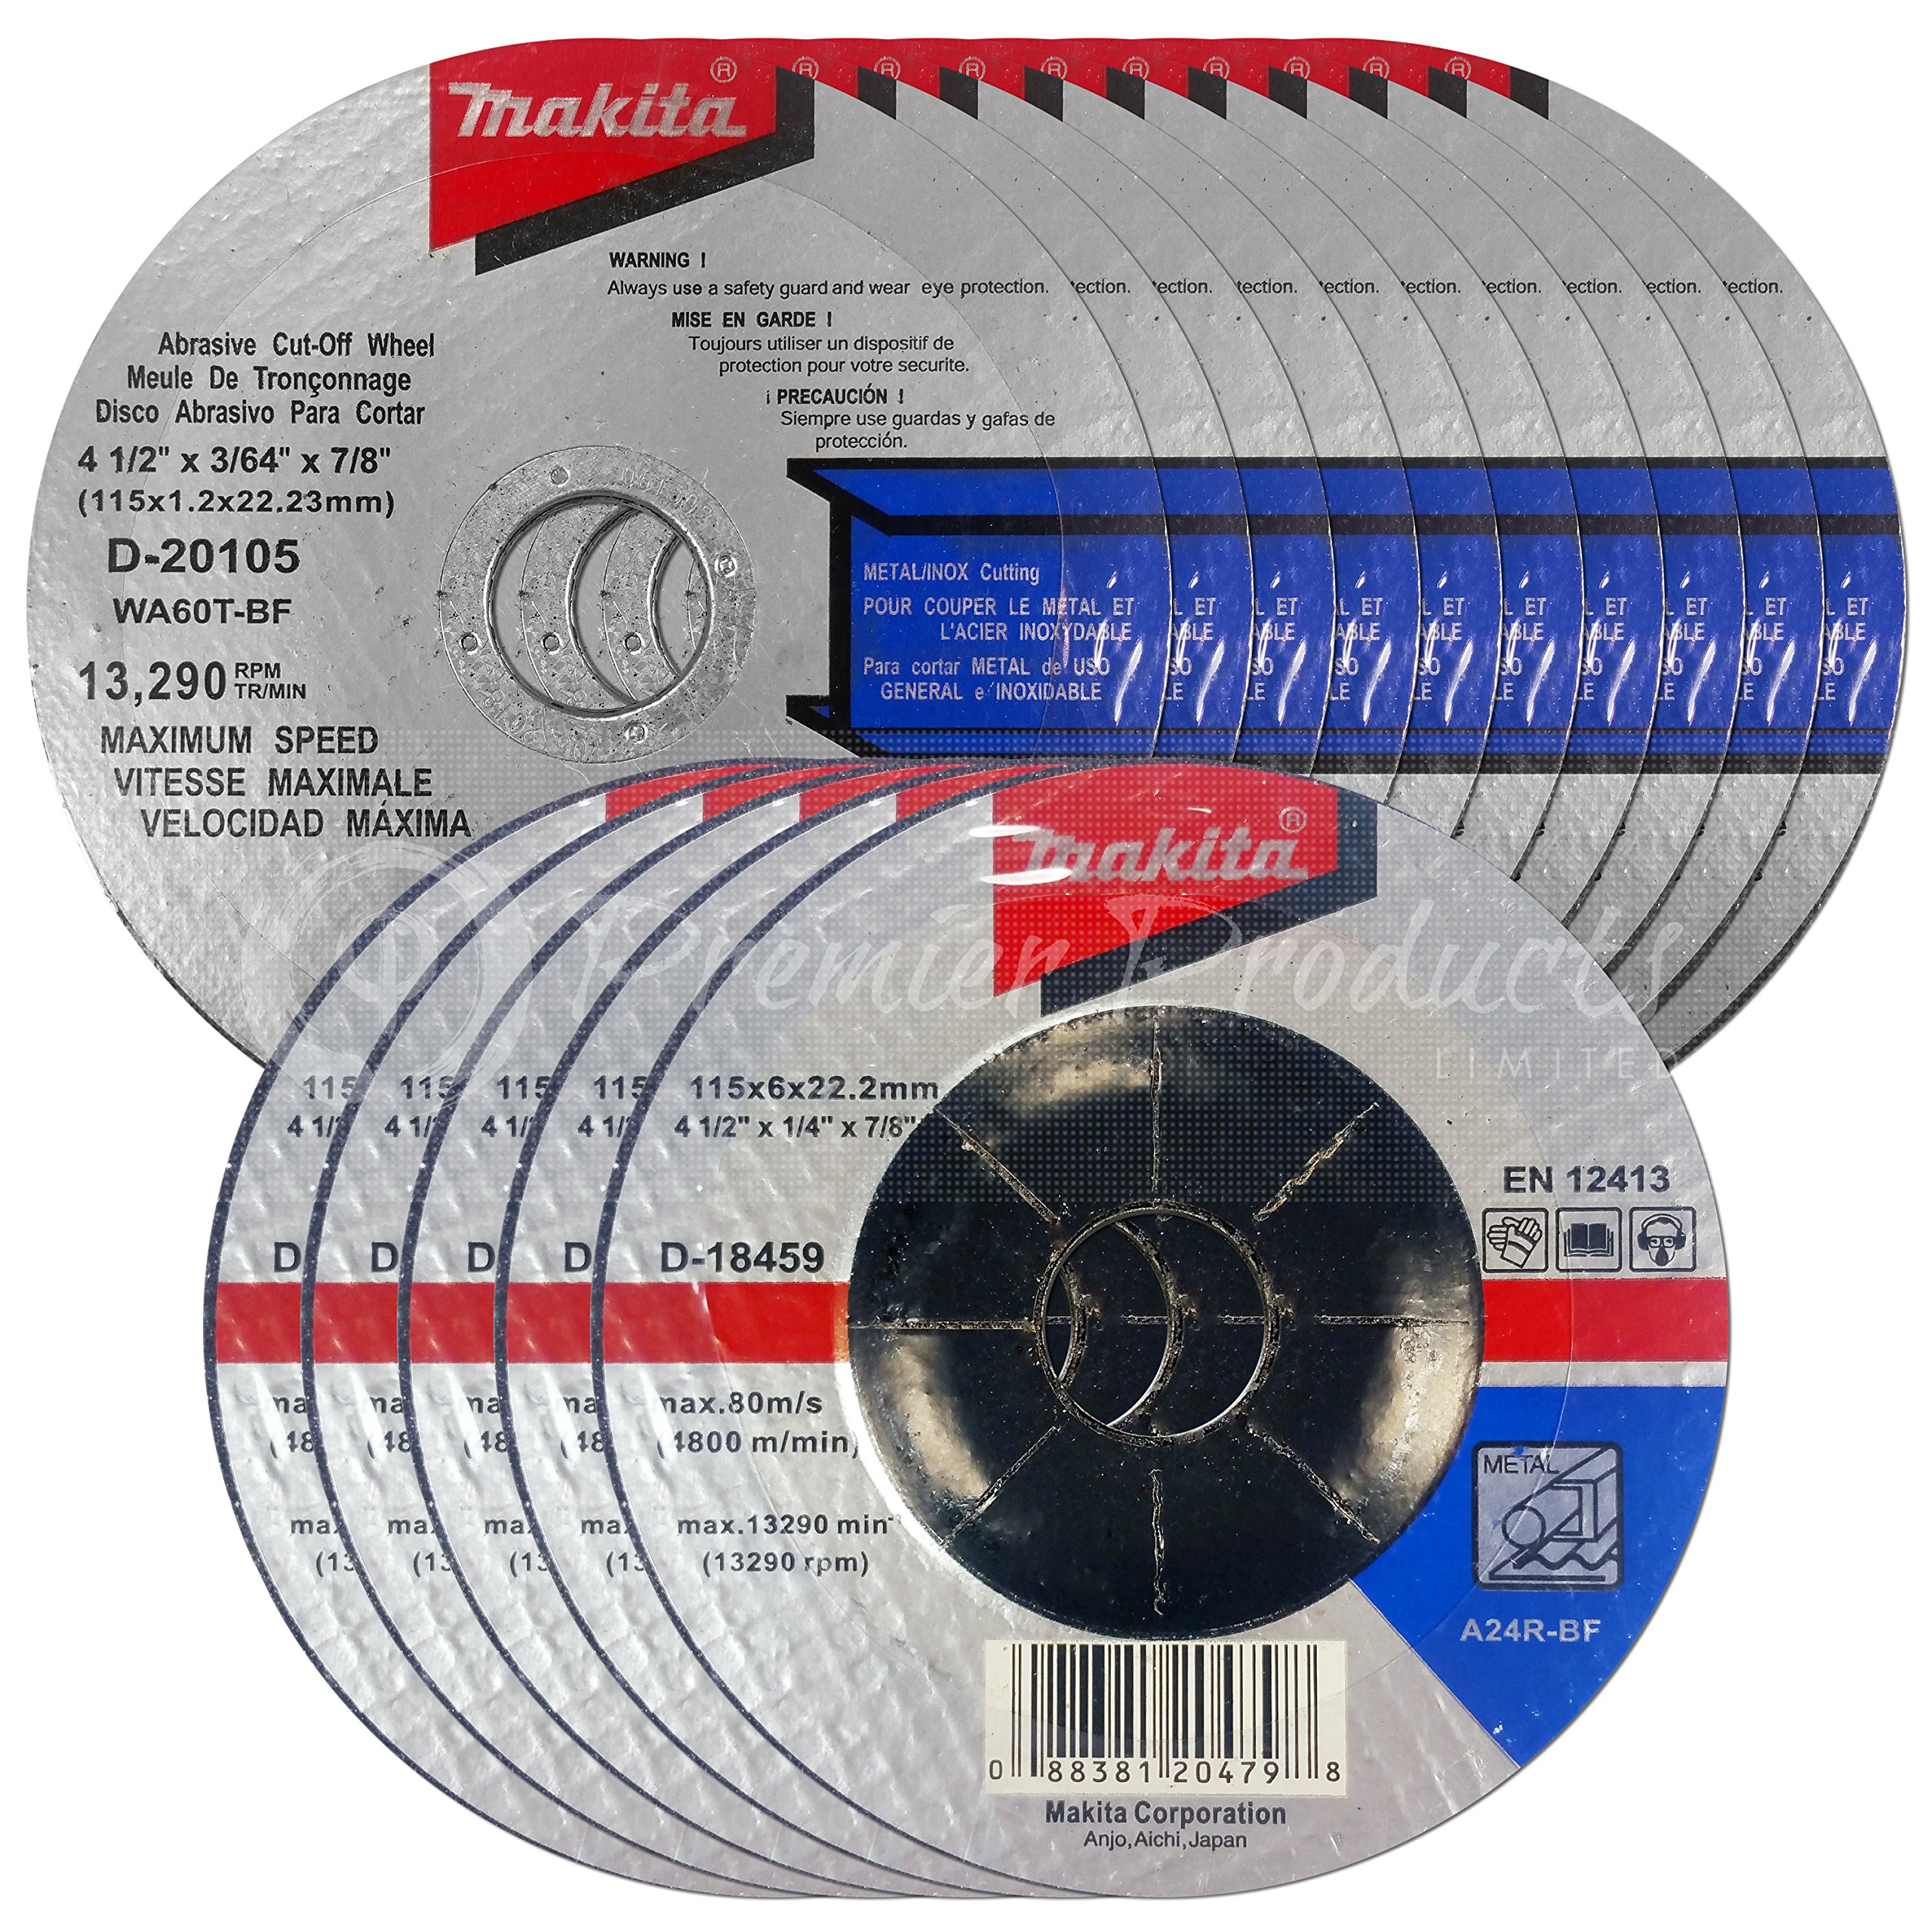 Makita 15 Piece - 4 1 2 Grinding & Cutting Wheel Set For Grinders - Aggressive Grind & Cut For Metal - 4-1/2'' x 7/8-Inch